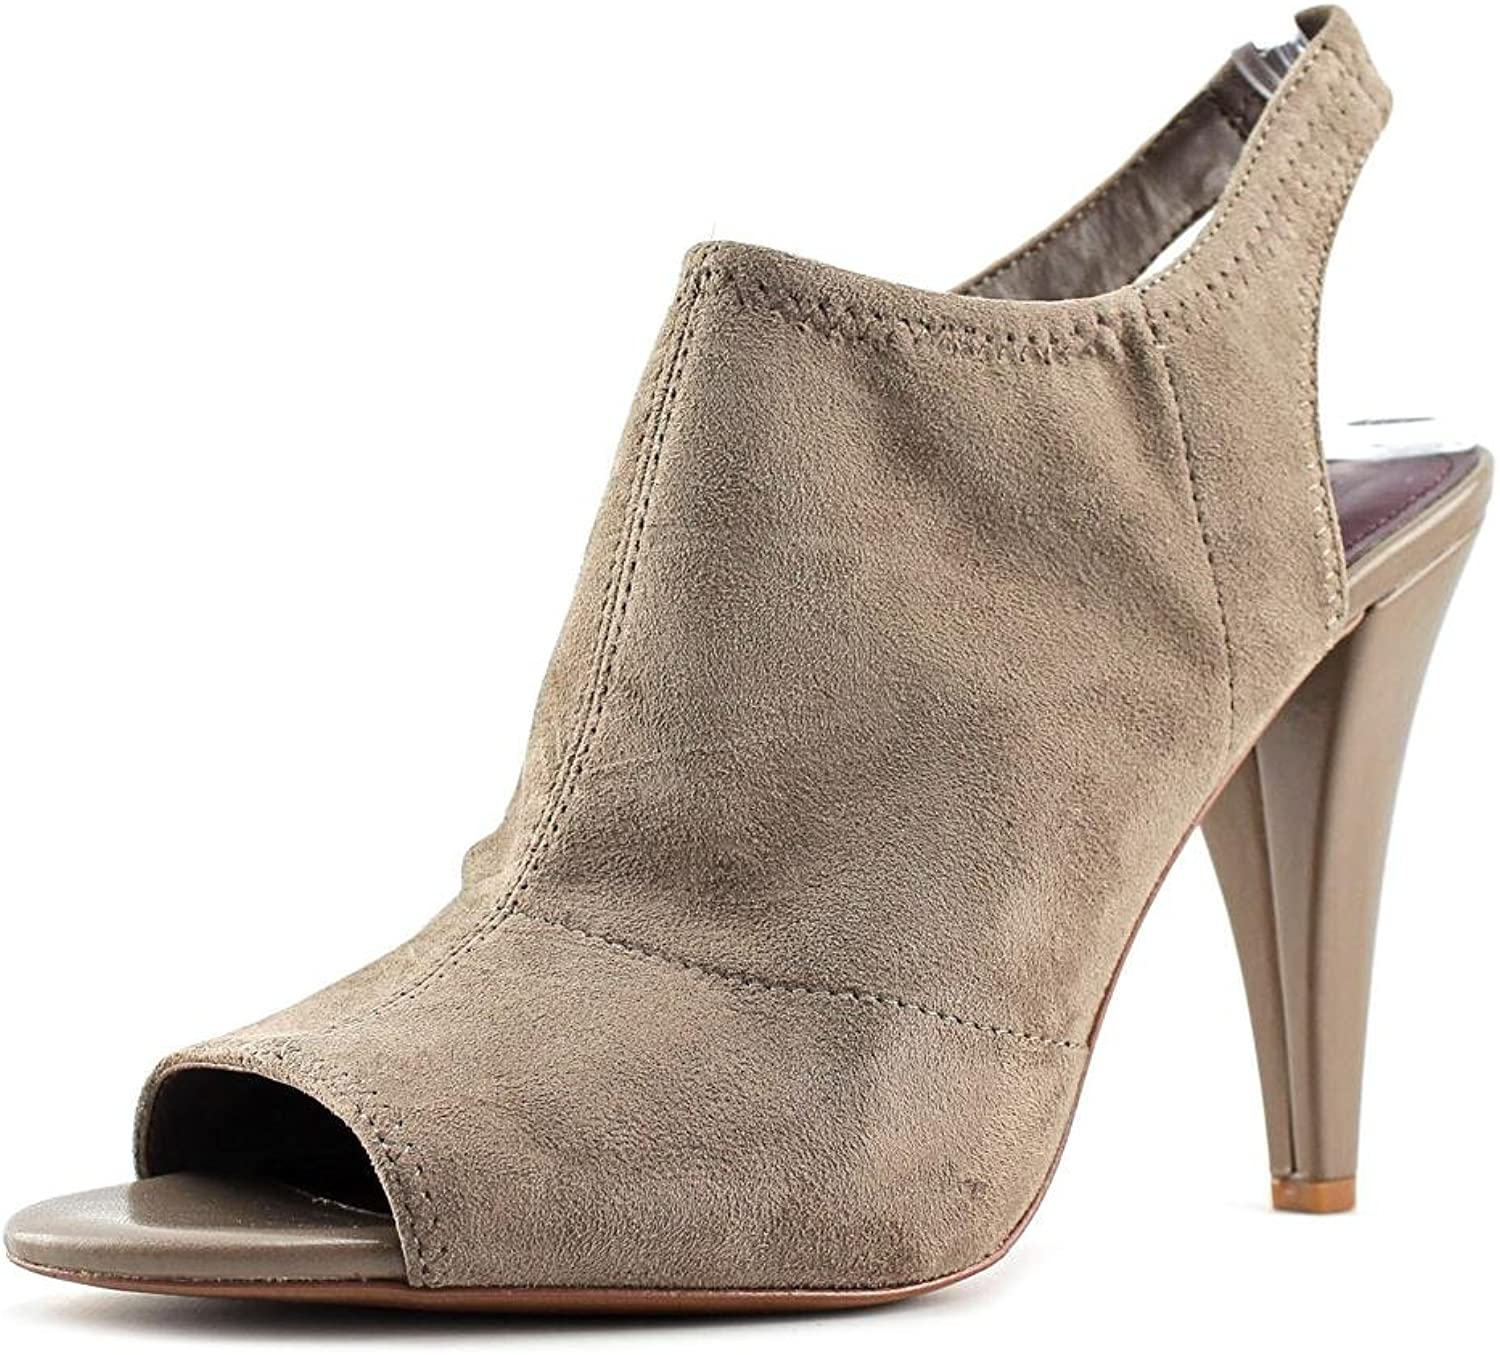 BCBGeneration Womens Remmy Suede Open Toe Classic Pumps Taupe Size 10.0